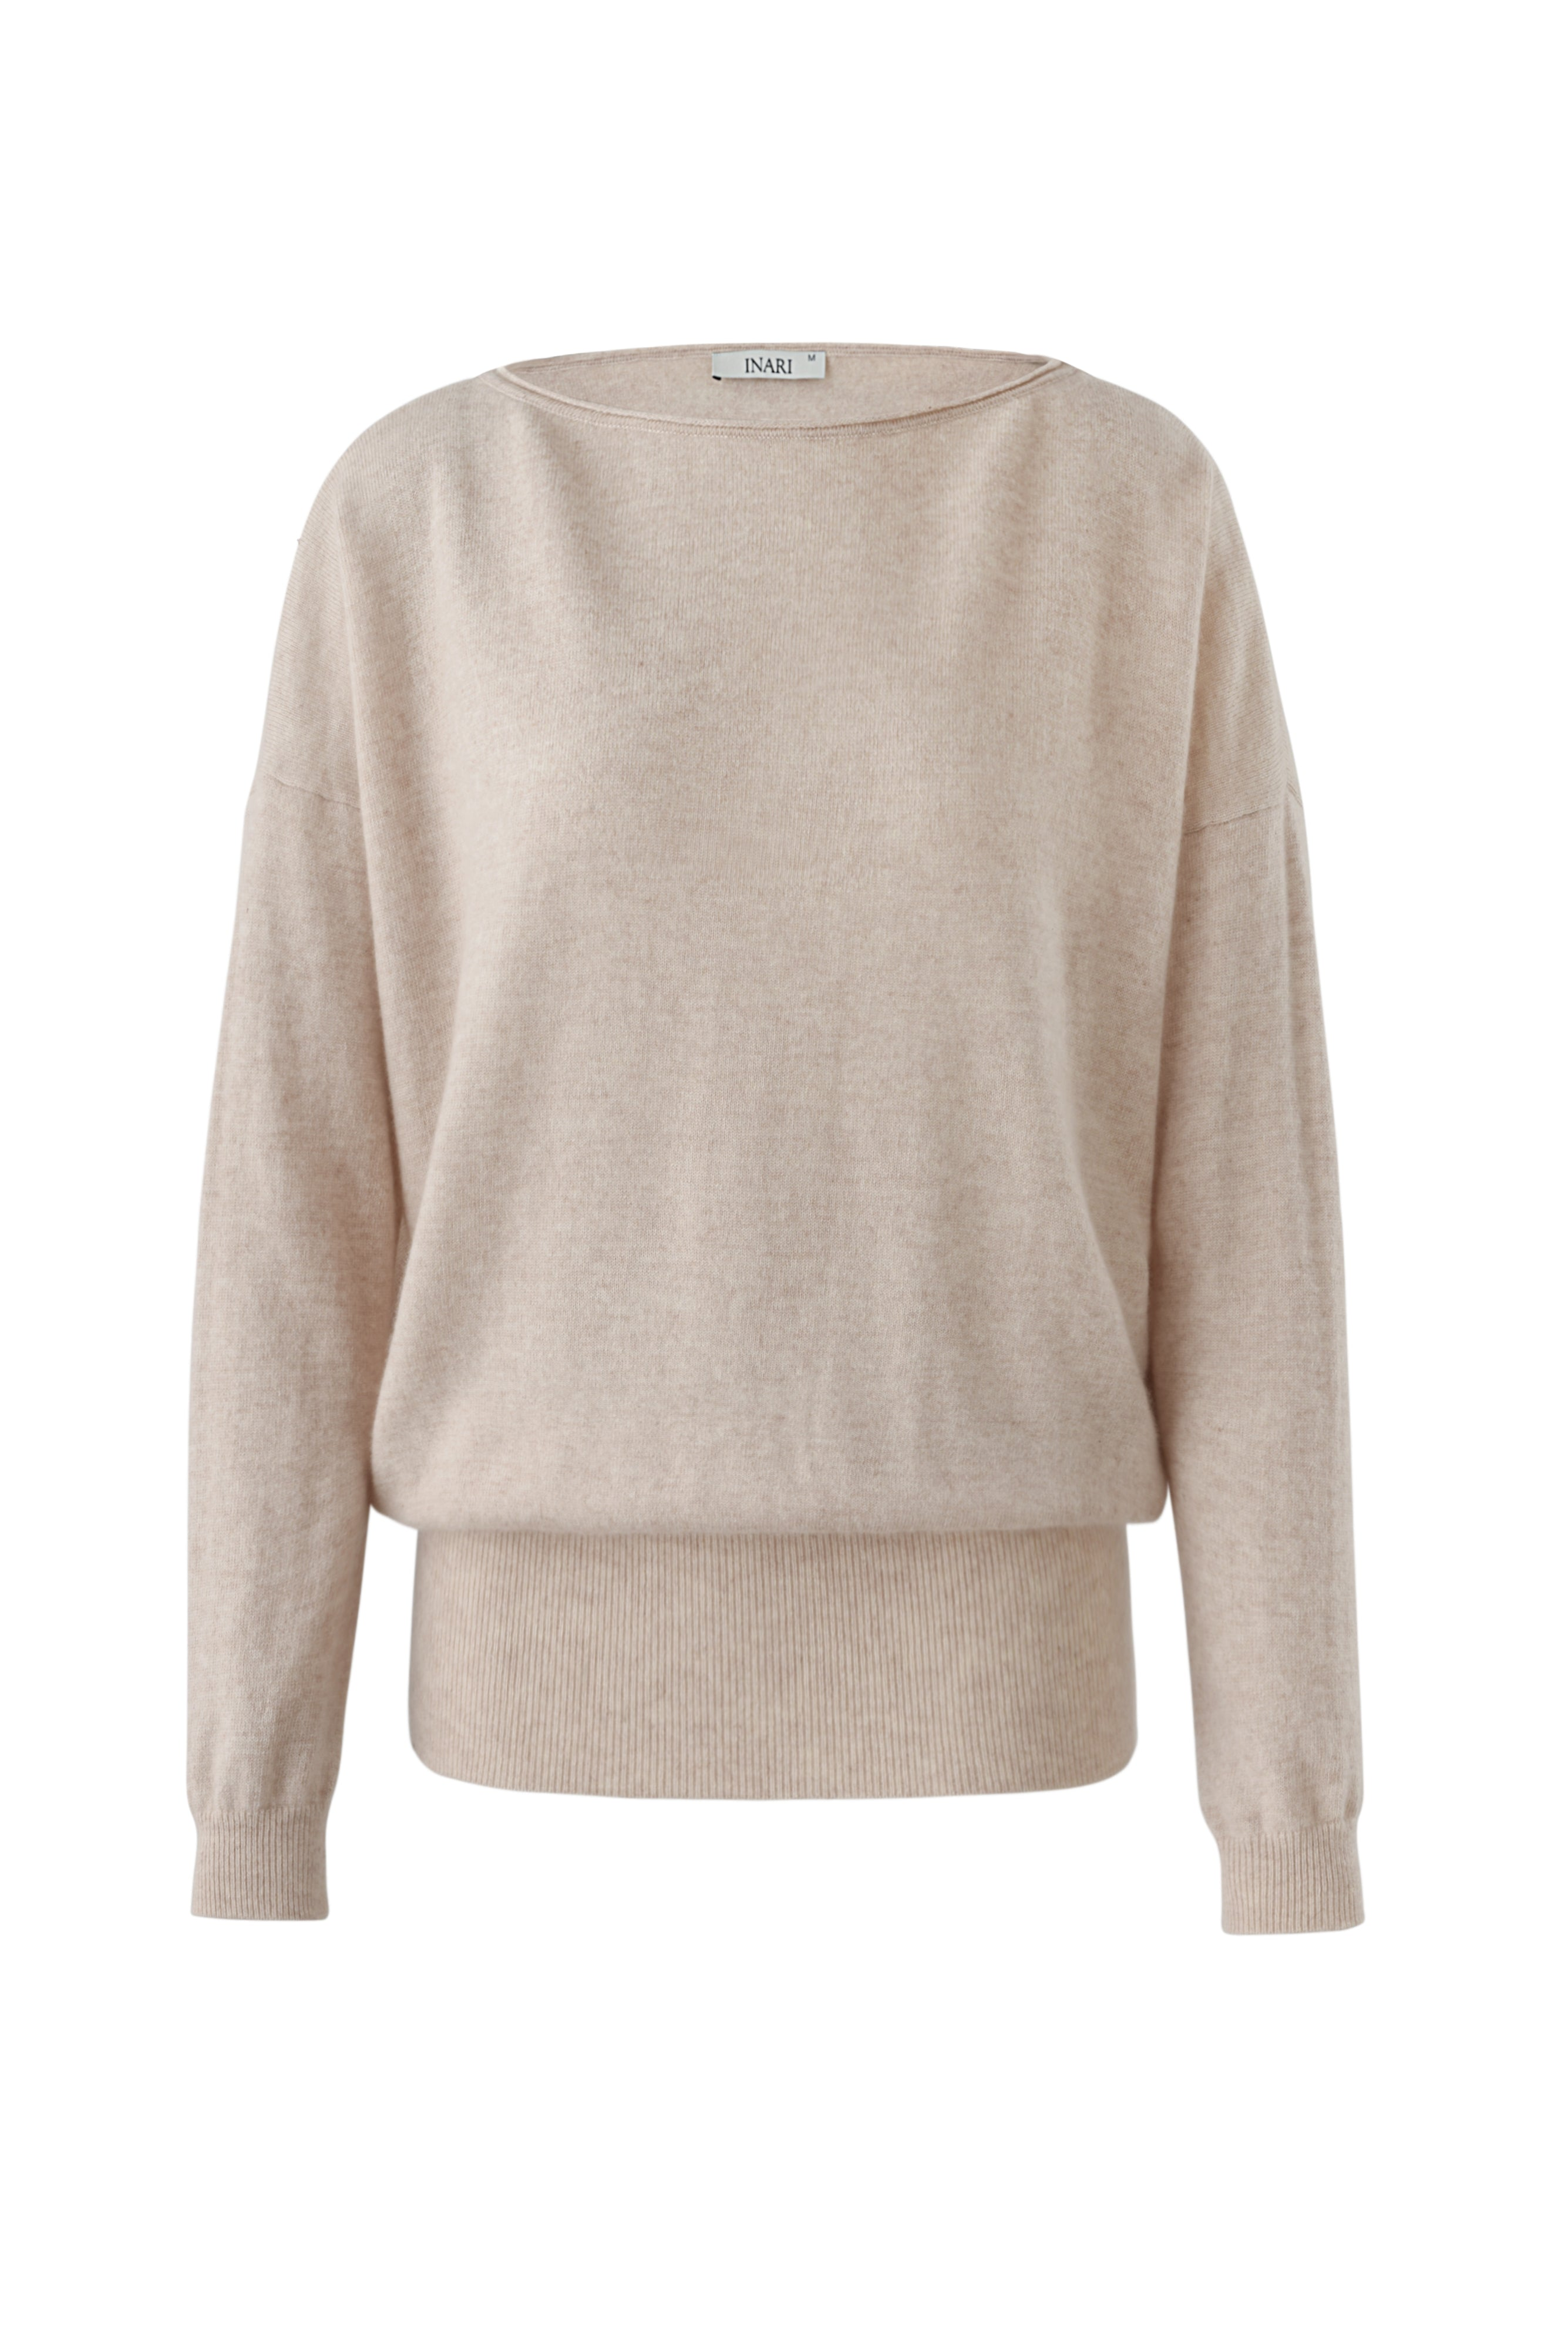 Inari Women's beige cashmere O-neck sweater - front side - 100% high-quality cashmere